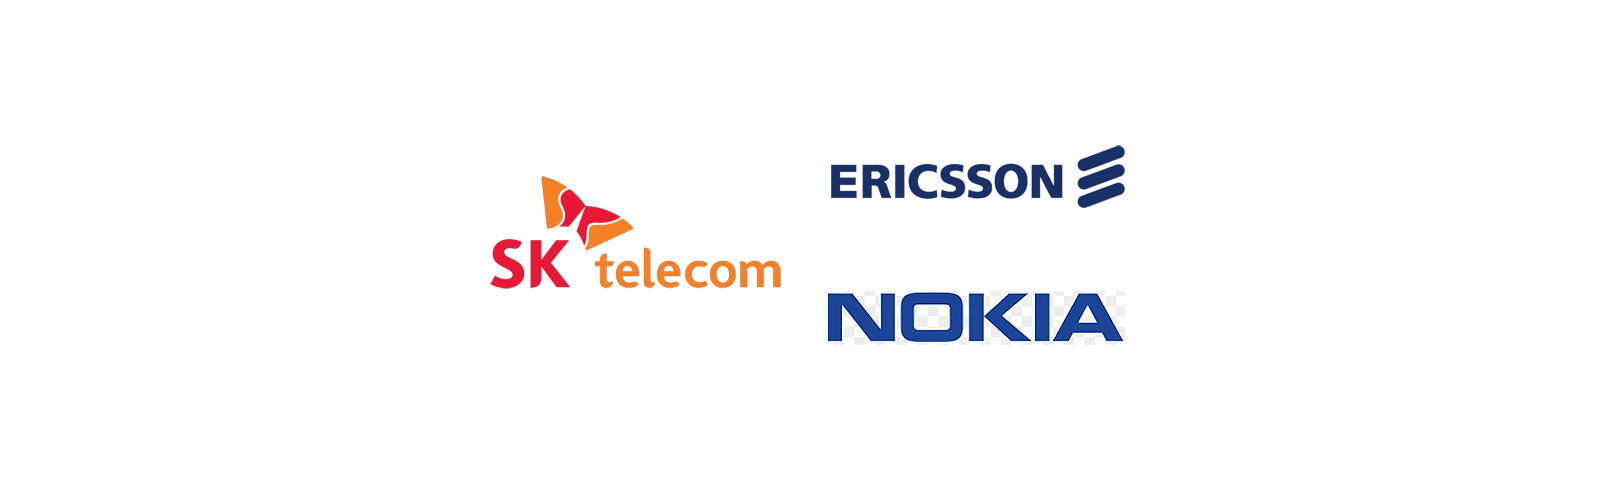 SK Telecom, Nokia and Ericsson to work on 5G improvement and 6G R&D